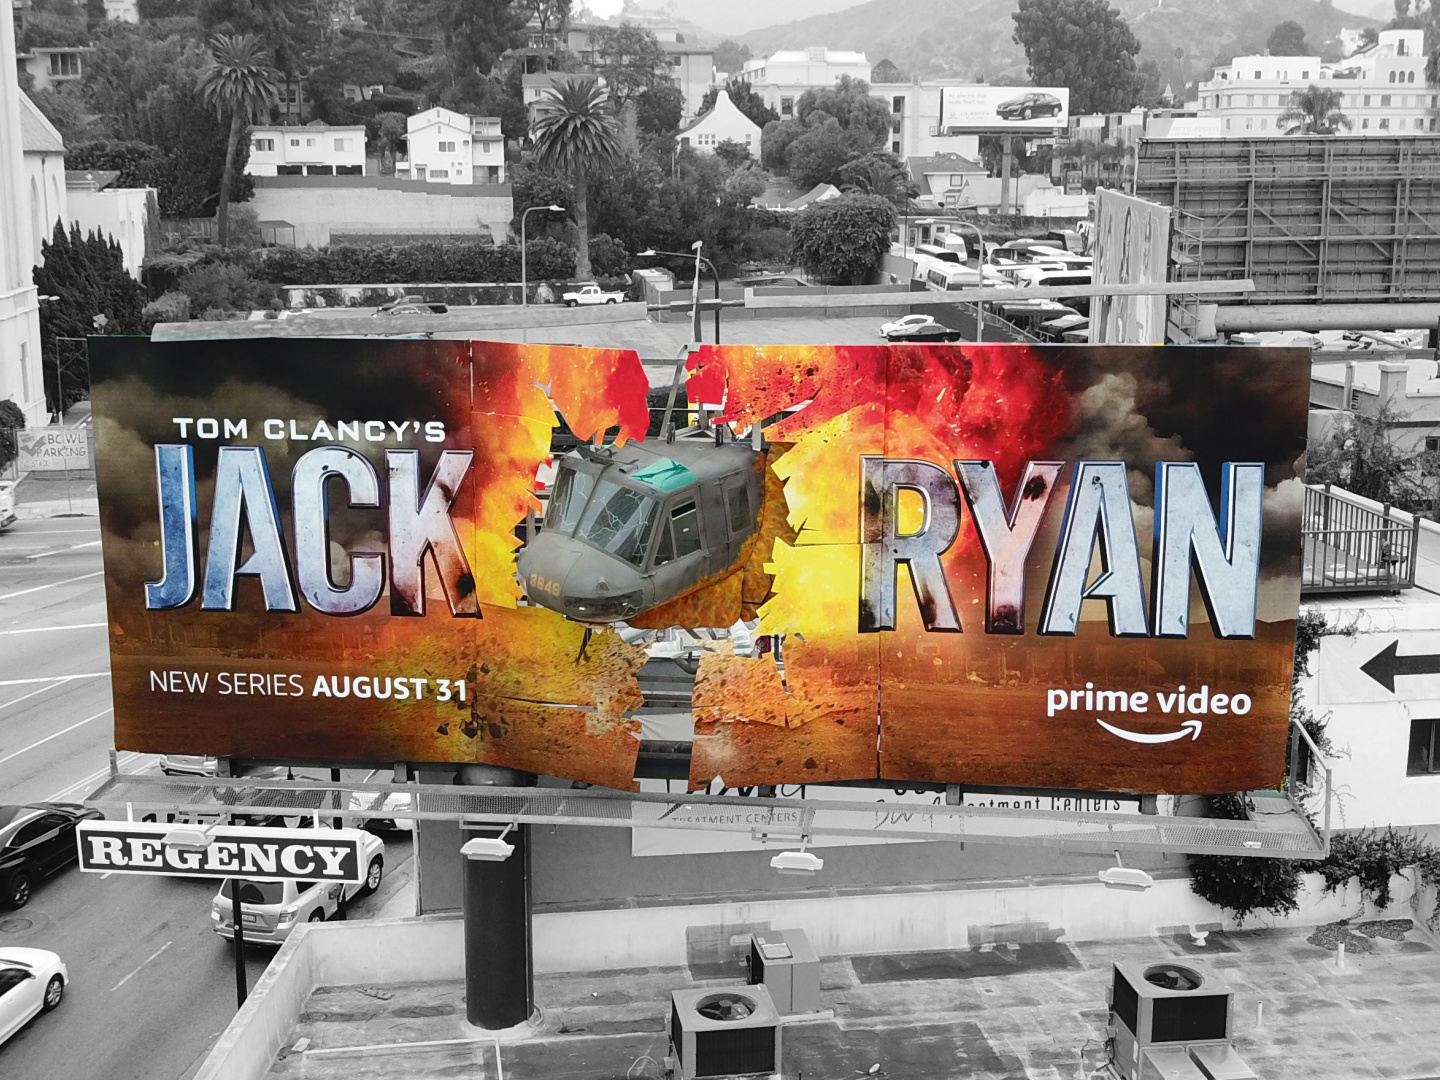 Jack Ryan Season 1 – High Impact OOH Thumbnail